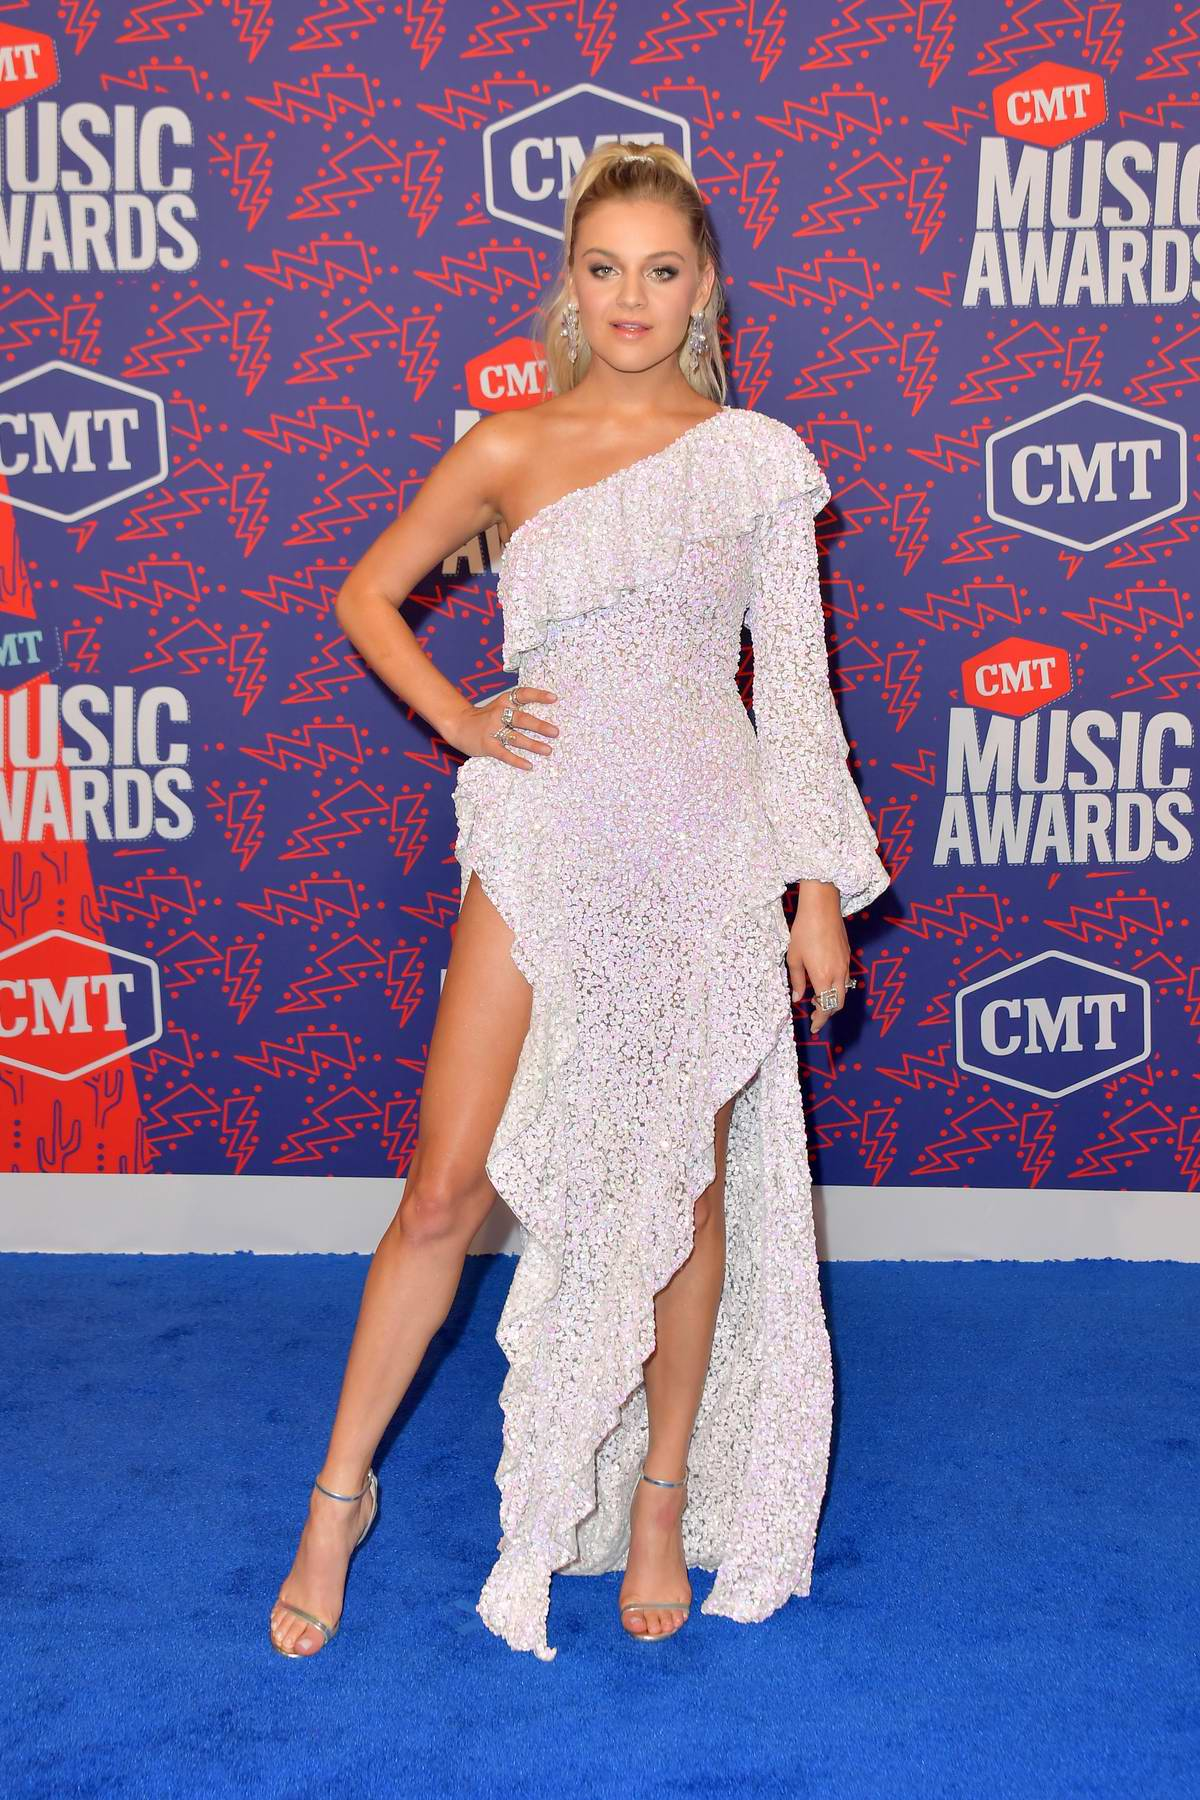 Kelsea Ballerini attends the 2019 CMT Music Awards at Bridgestone Arena in Nashville, TN